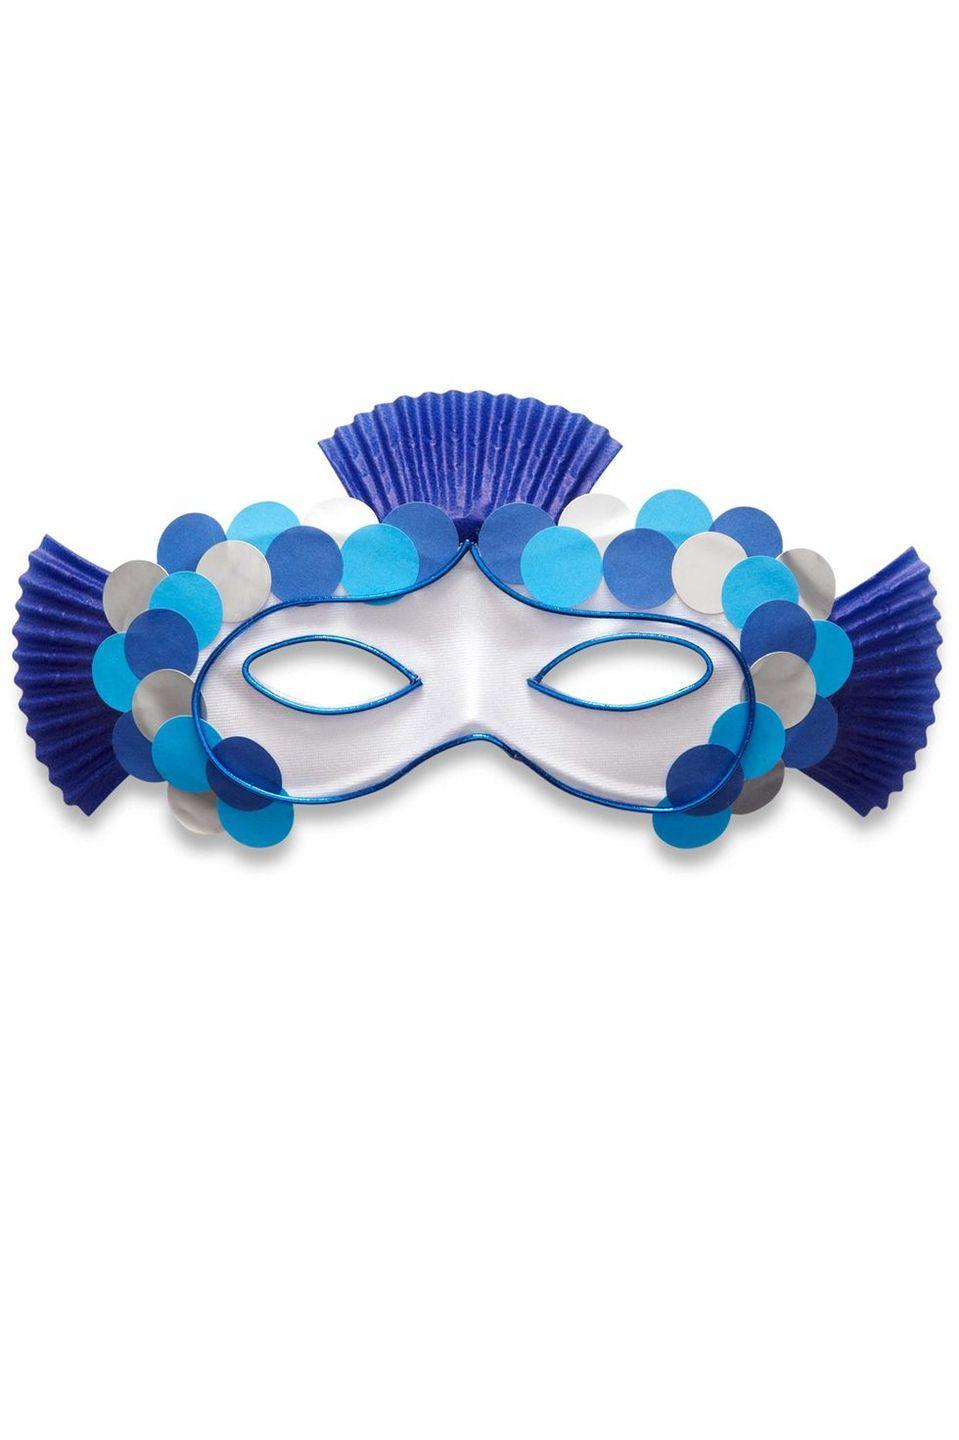 <p>Celebrate Halloween under the sea this year with this adorable fish mask. </p><p>1. Fold each cupcake liner in half horizontally. Hot-glue to the back of the mask in the top center and at the side of each eye as shown. Let set.</p><p>2. Beginning in the center and working your way to the side and then down, overlap office dots as shown.</p><p>3. Measure cord in a face shape, bringing it to a point in the middle of the eyes. Trim to size and adhere with hot glue. Let set. Repeat to outline each eye.</p>